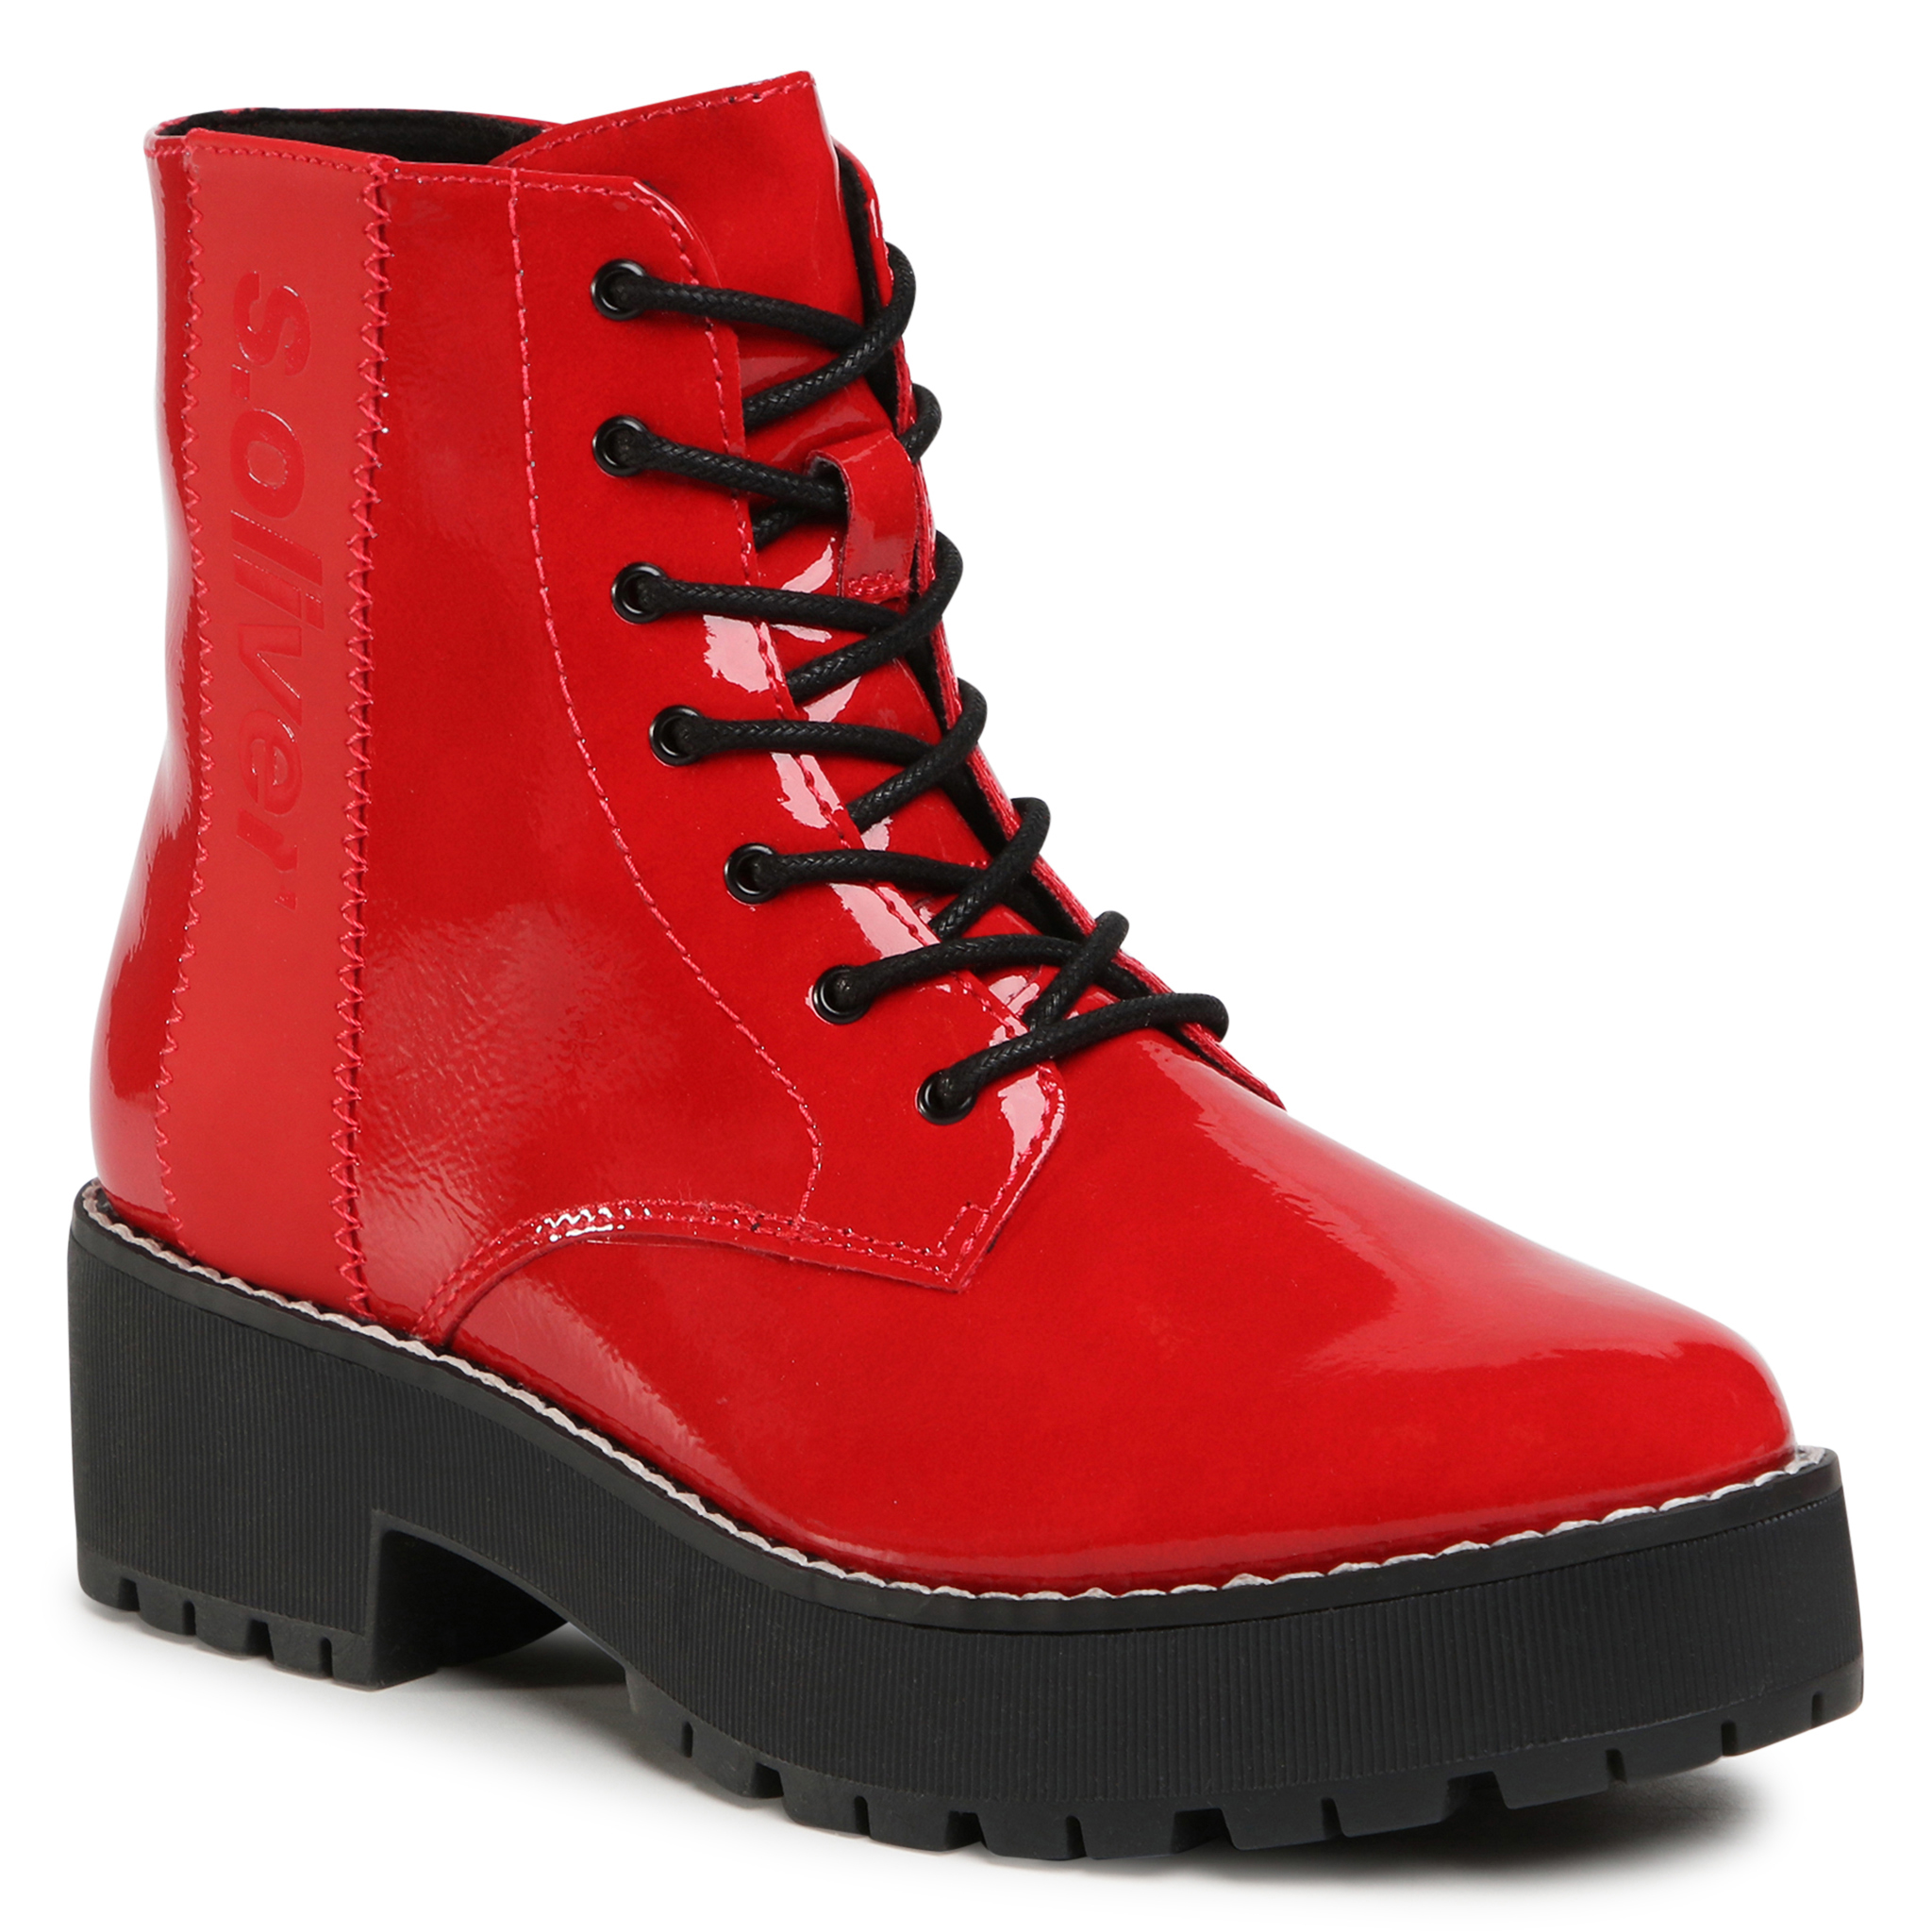 Botines S.OLIVER - 5-25221-25 Red Patent 504